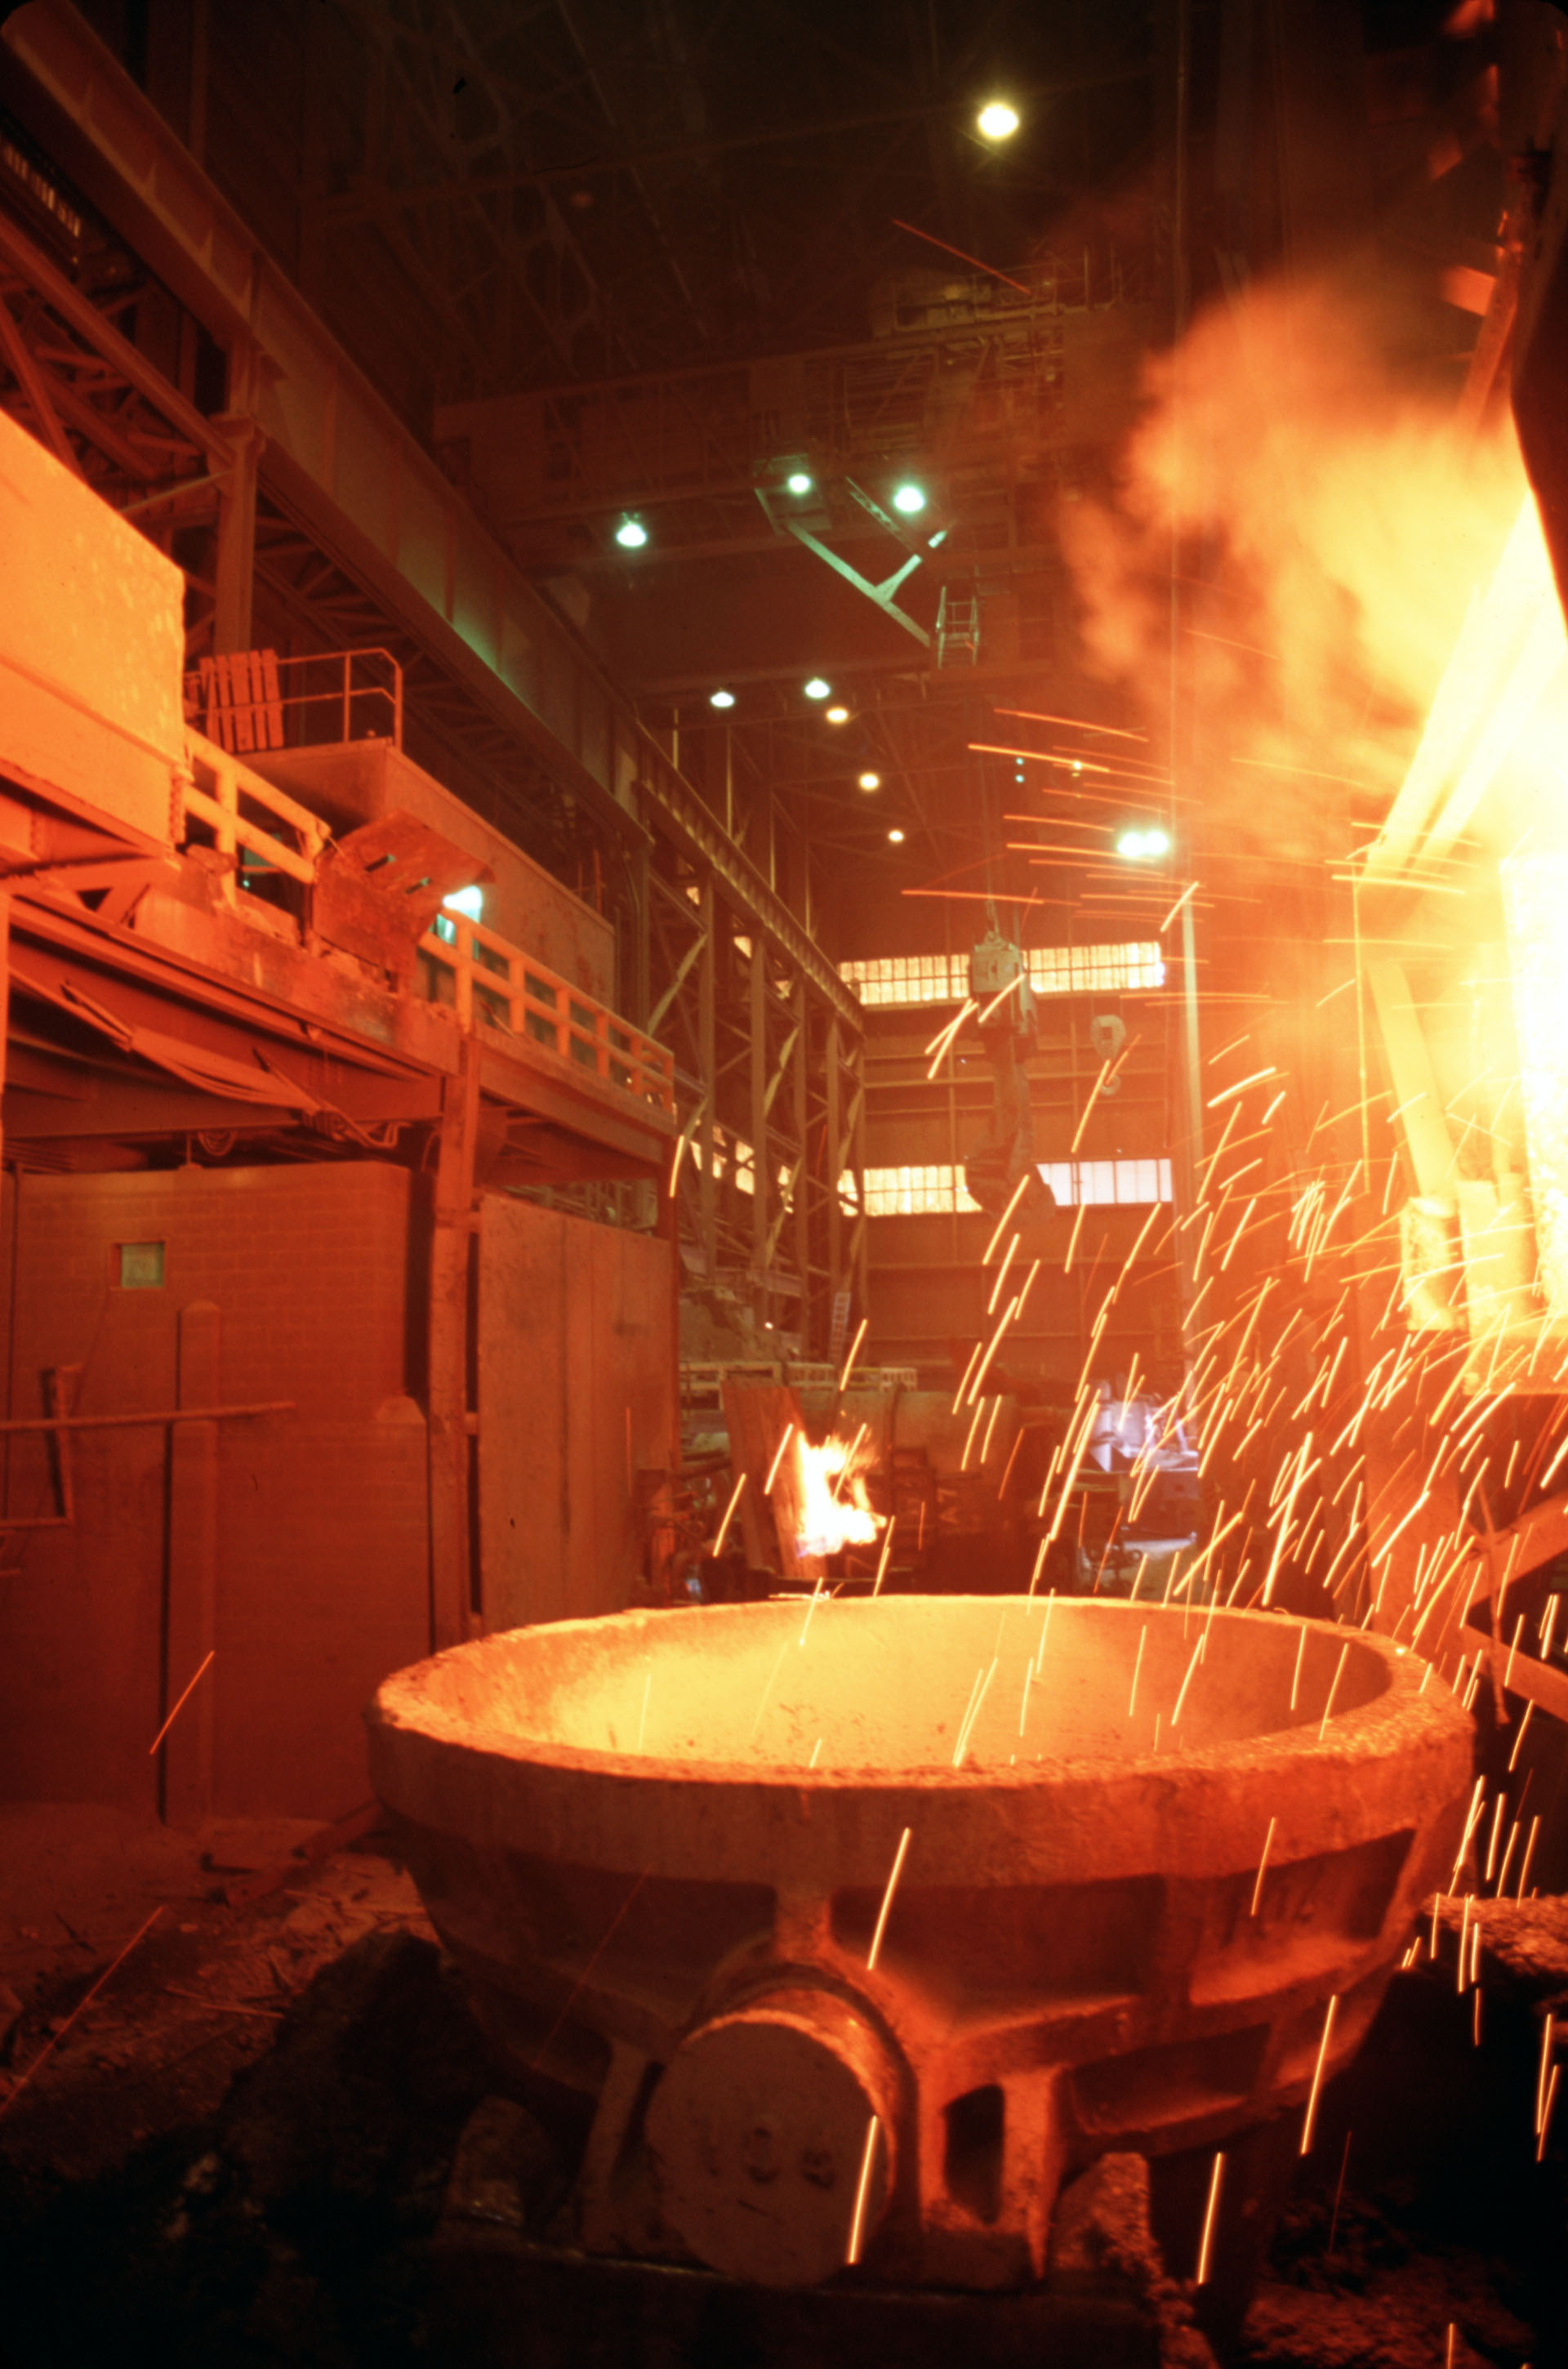 file-photo-the-steel-industry - Pennsylvania Pictures ...